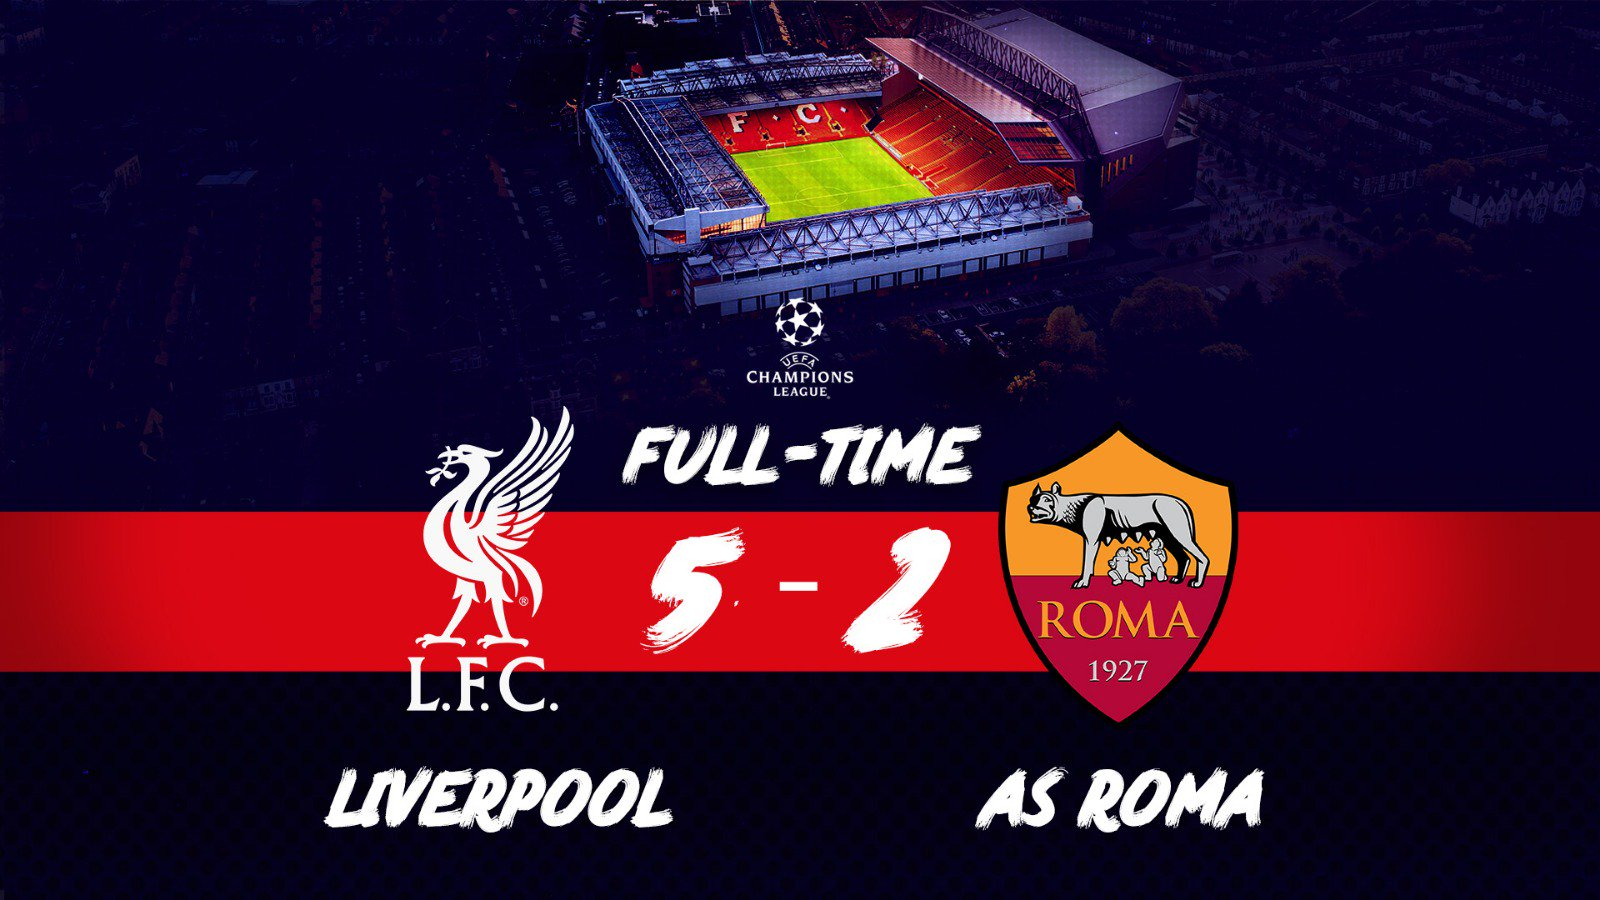 It's half-time in the tie. Another big 90 minutes in Rome await.   Up the Reds! �� https://t.co/LeSwh7tVzl